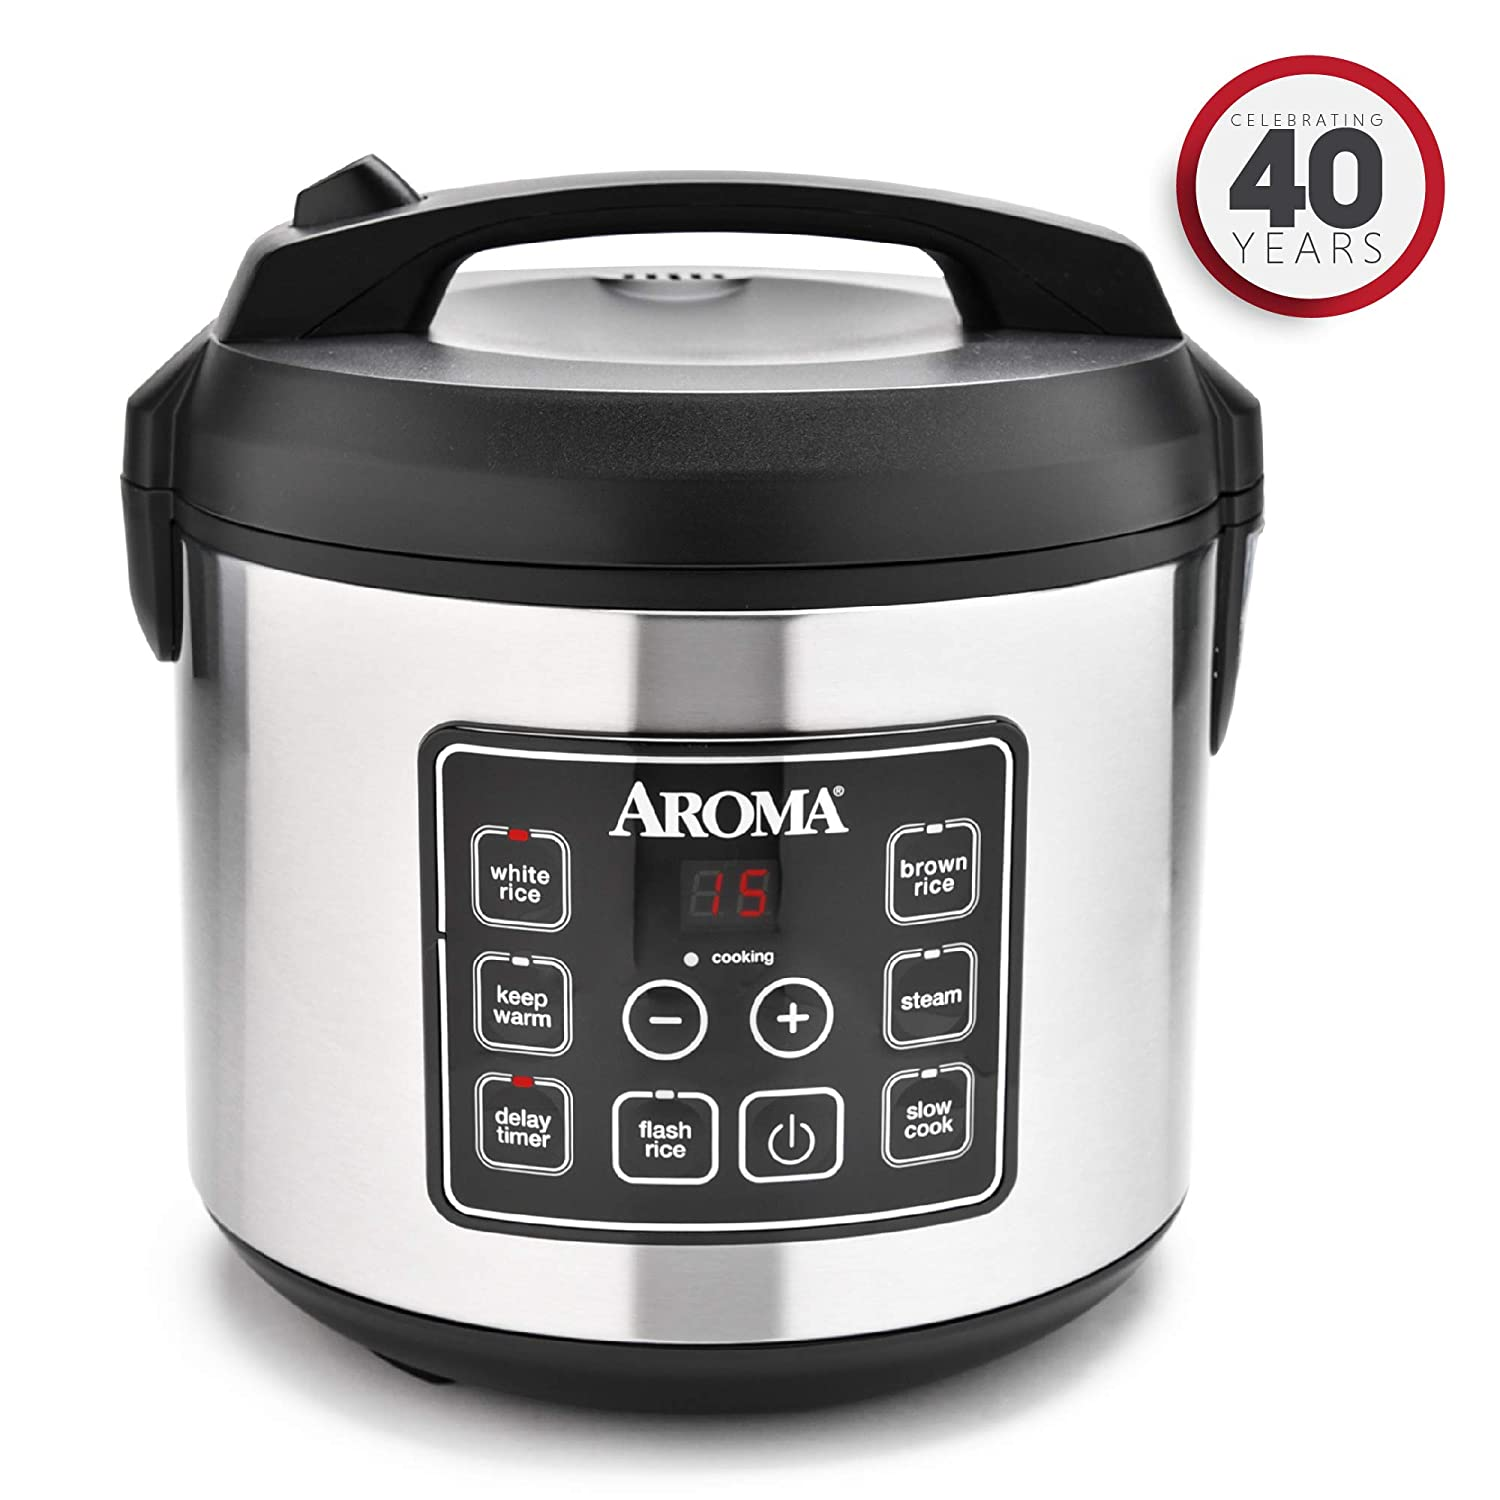 Aroma Housewares 20 Cup Cooked (10 cup uncooked) Digital Rice Cooker, Slow Cooker, Food Steamer, SS Exterior (ARC-150SB) by Aroma Housewares   B0055FSN0Y